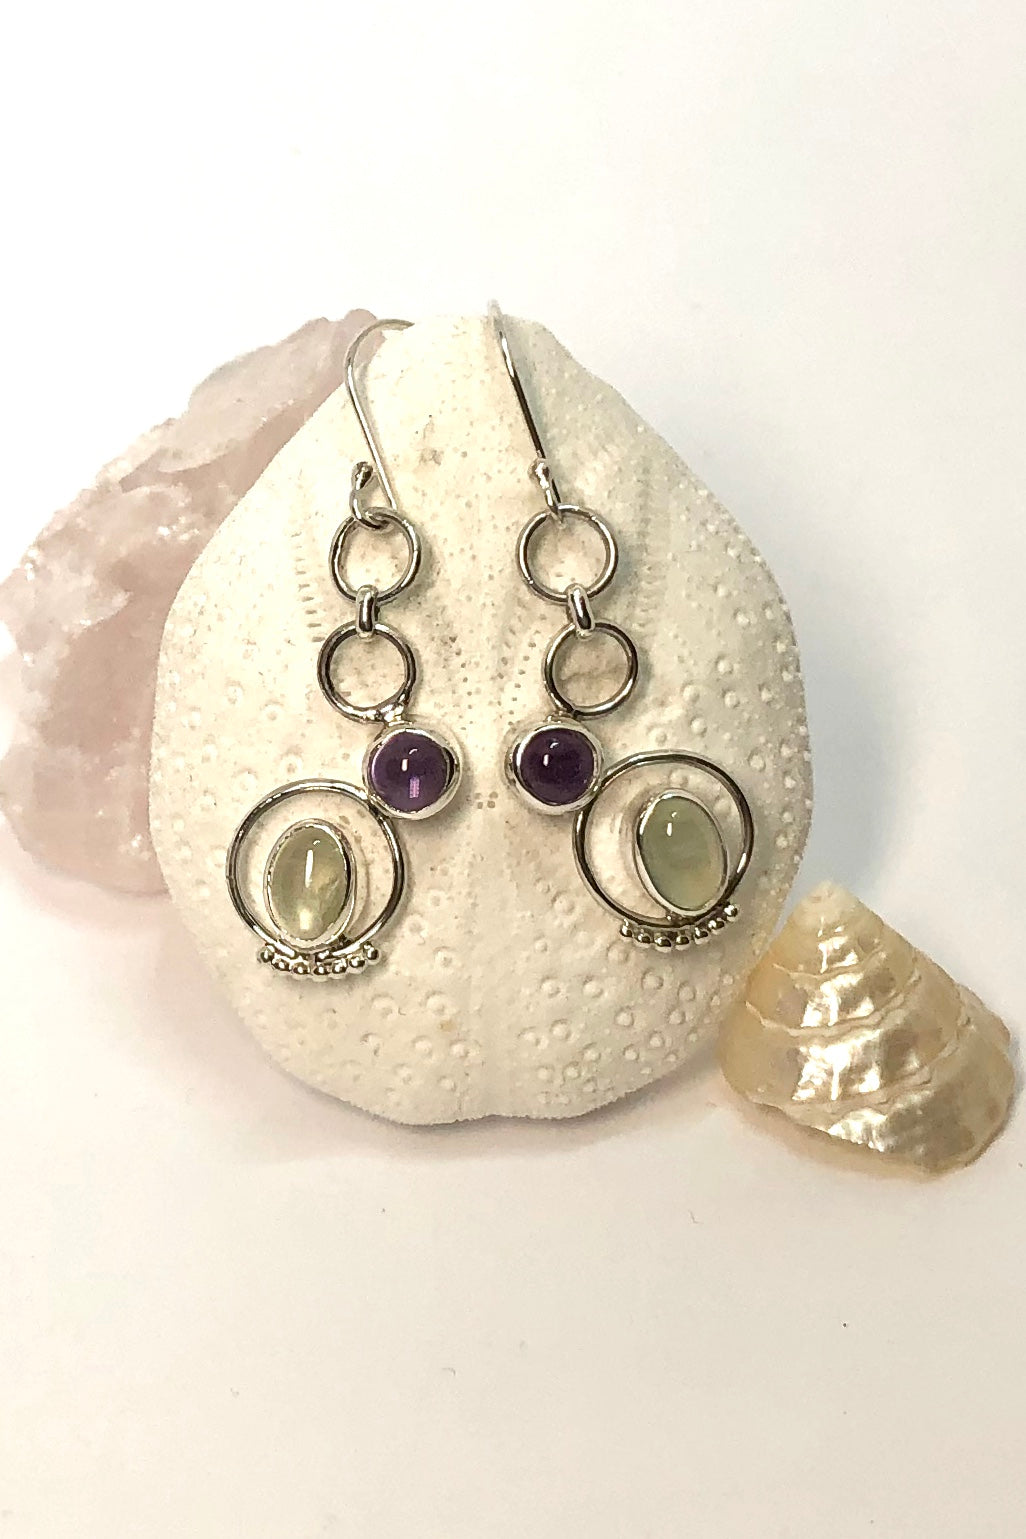 The Earrings Hoopla Circles pair feature a pale purple Amethyst and Moonstone gemstone set in uneven descending circles.